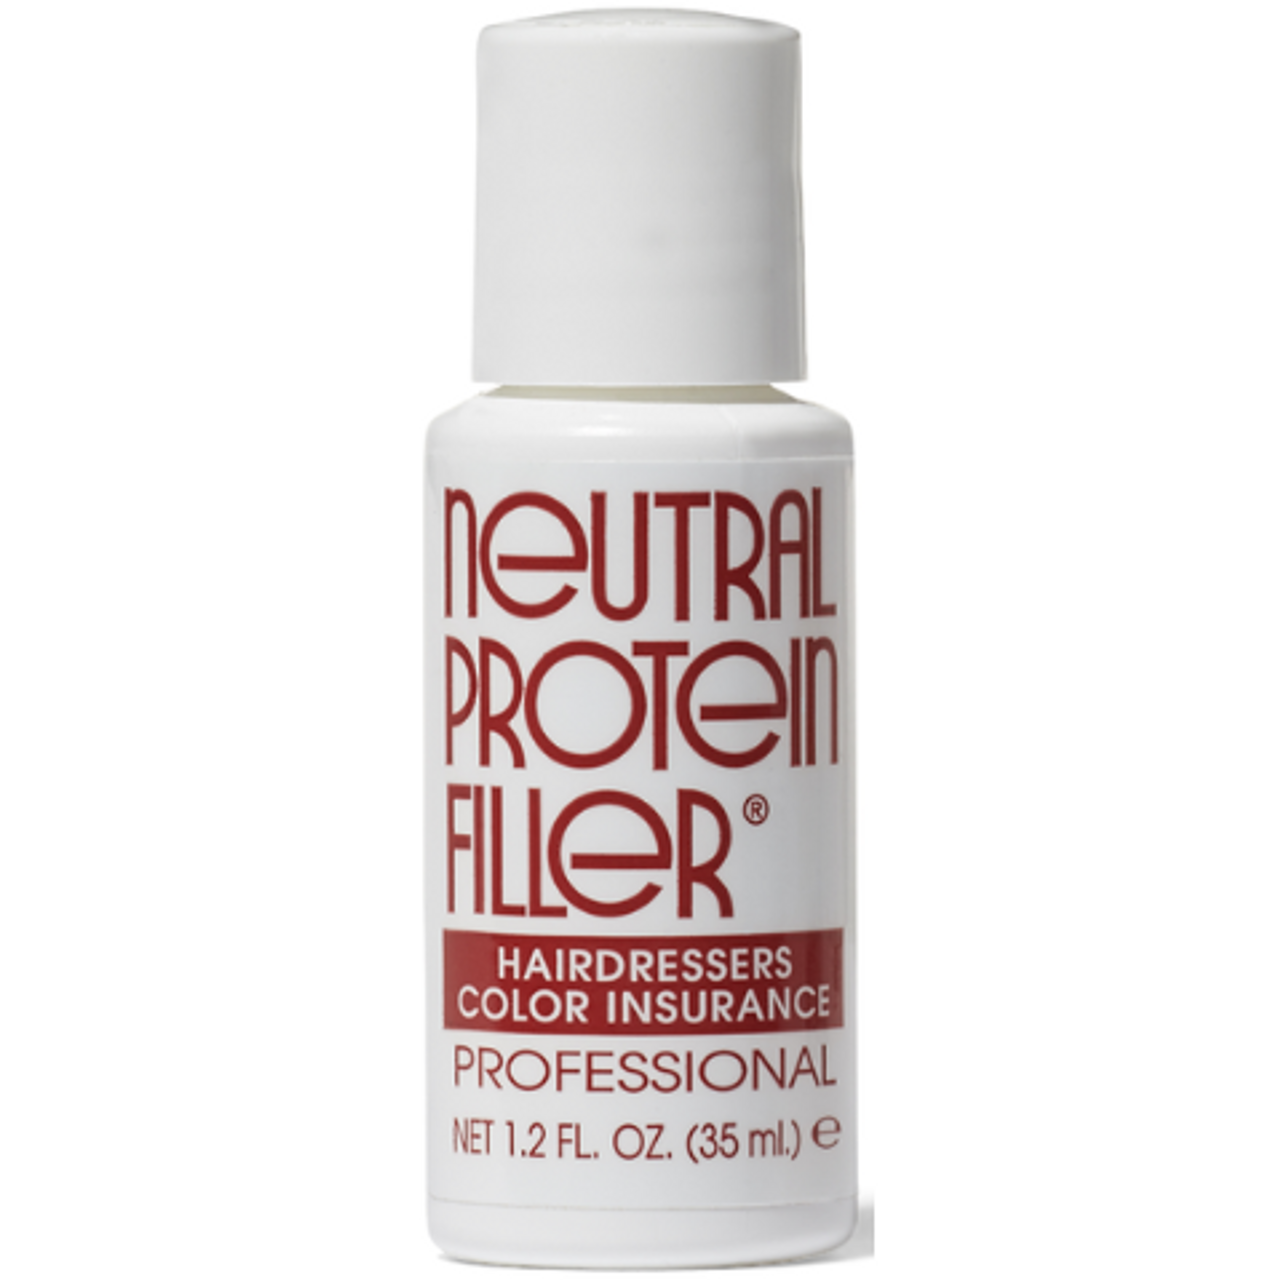 Colorful Neutral Protein Filler 1.2 oz